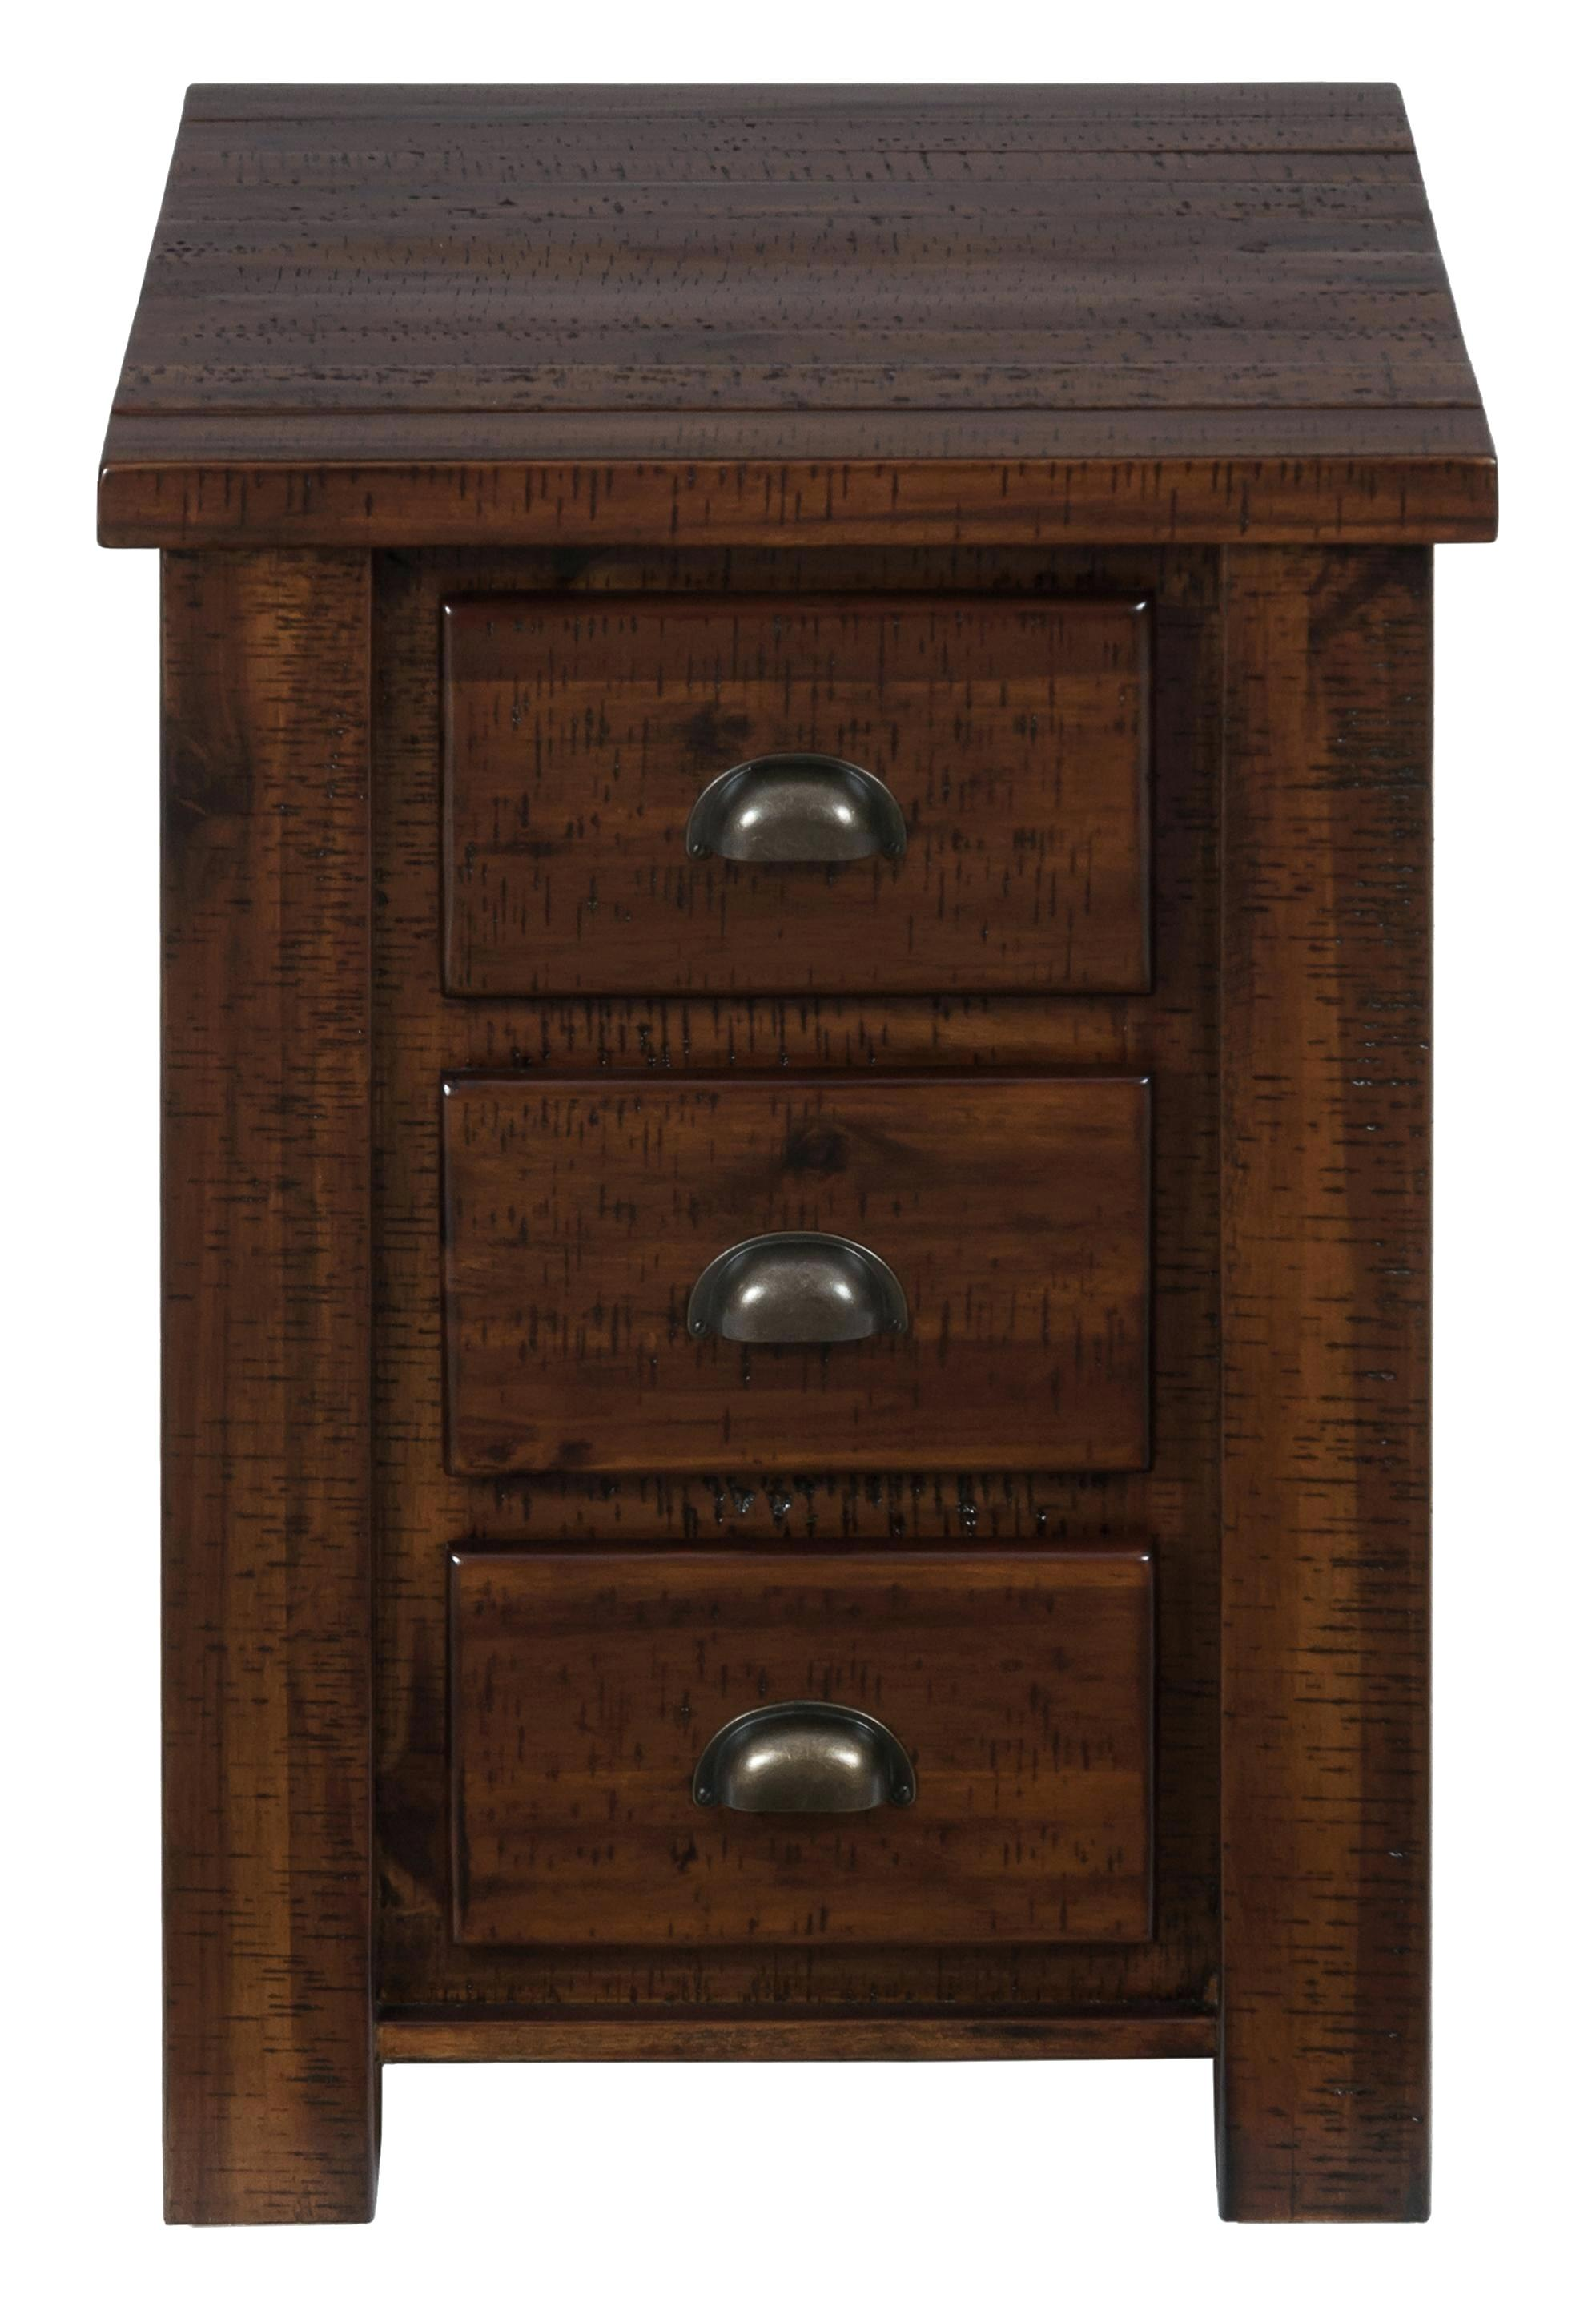 drawer end table eton side sometimesitis urban lodge brown with drawers dalton threshold target hafley accent ceramic knobs furniture bedside tables inch round white tablecloth